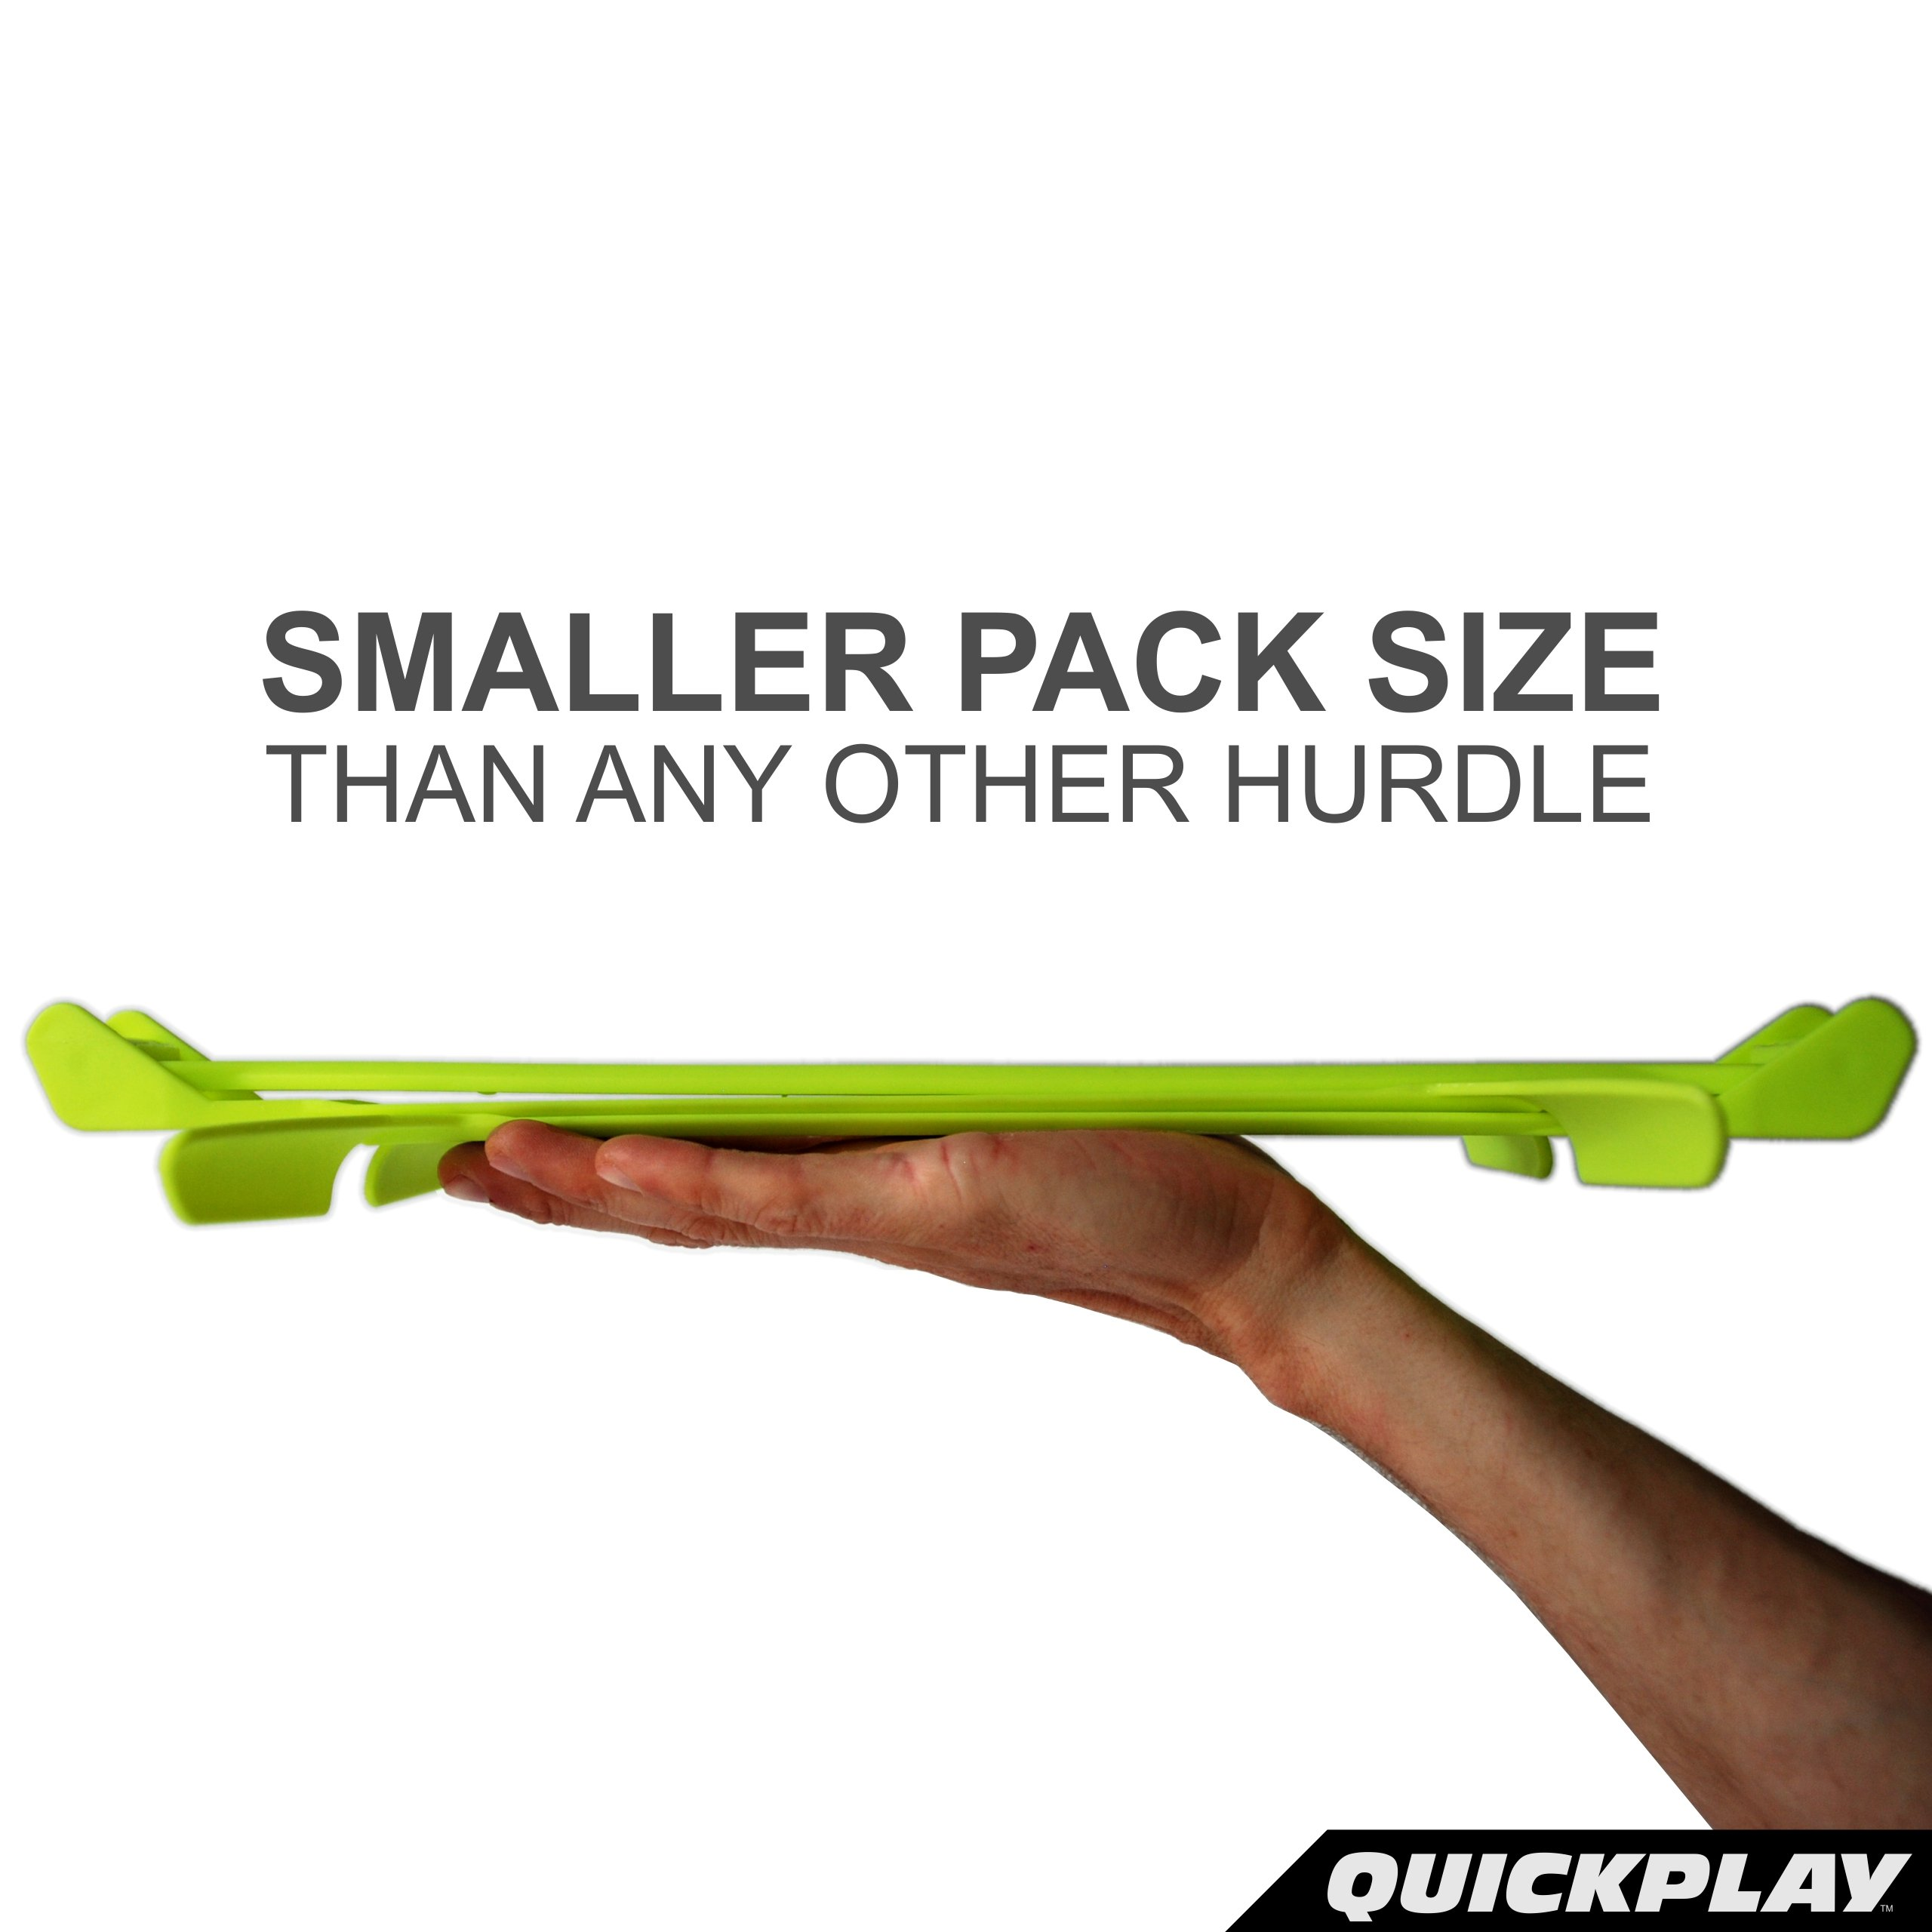 QuickPlay PRO Adjustable Height: 6'', 9'' + 12'' All-in-One Speed Hurdles (Set of 6) Speed Training Hurdles, Agility Hurdles and Plyometric Hurdles by QuickPlay (Image #4)